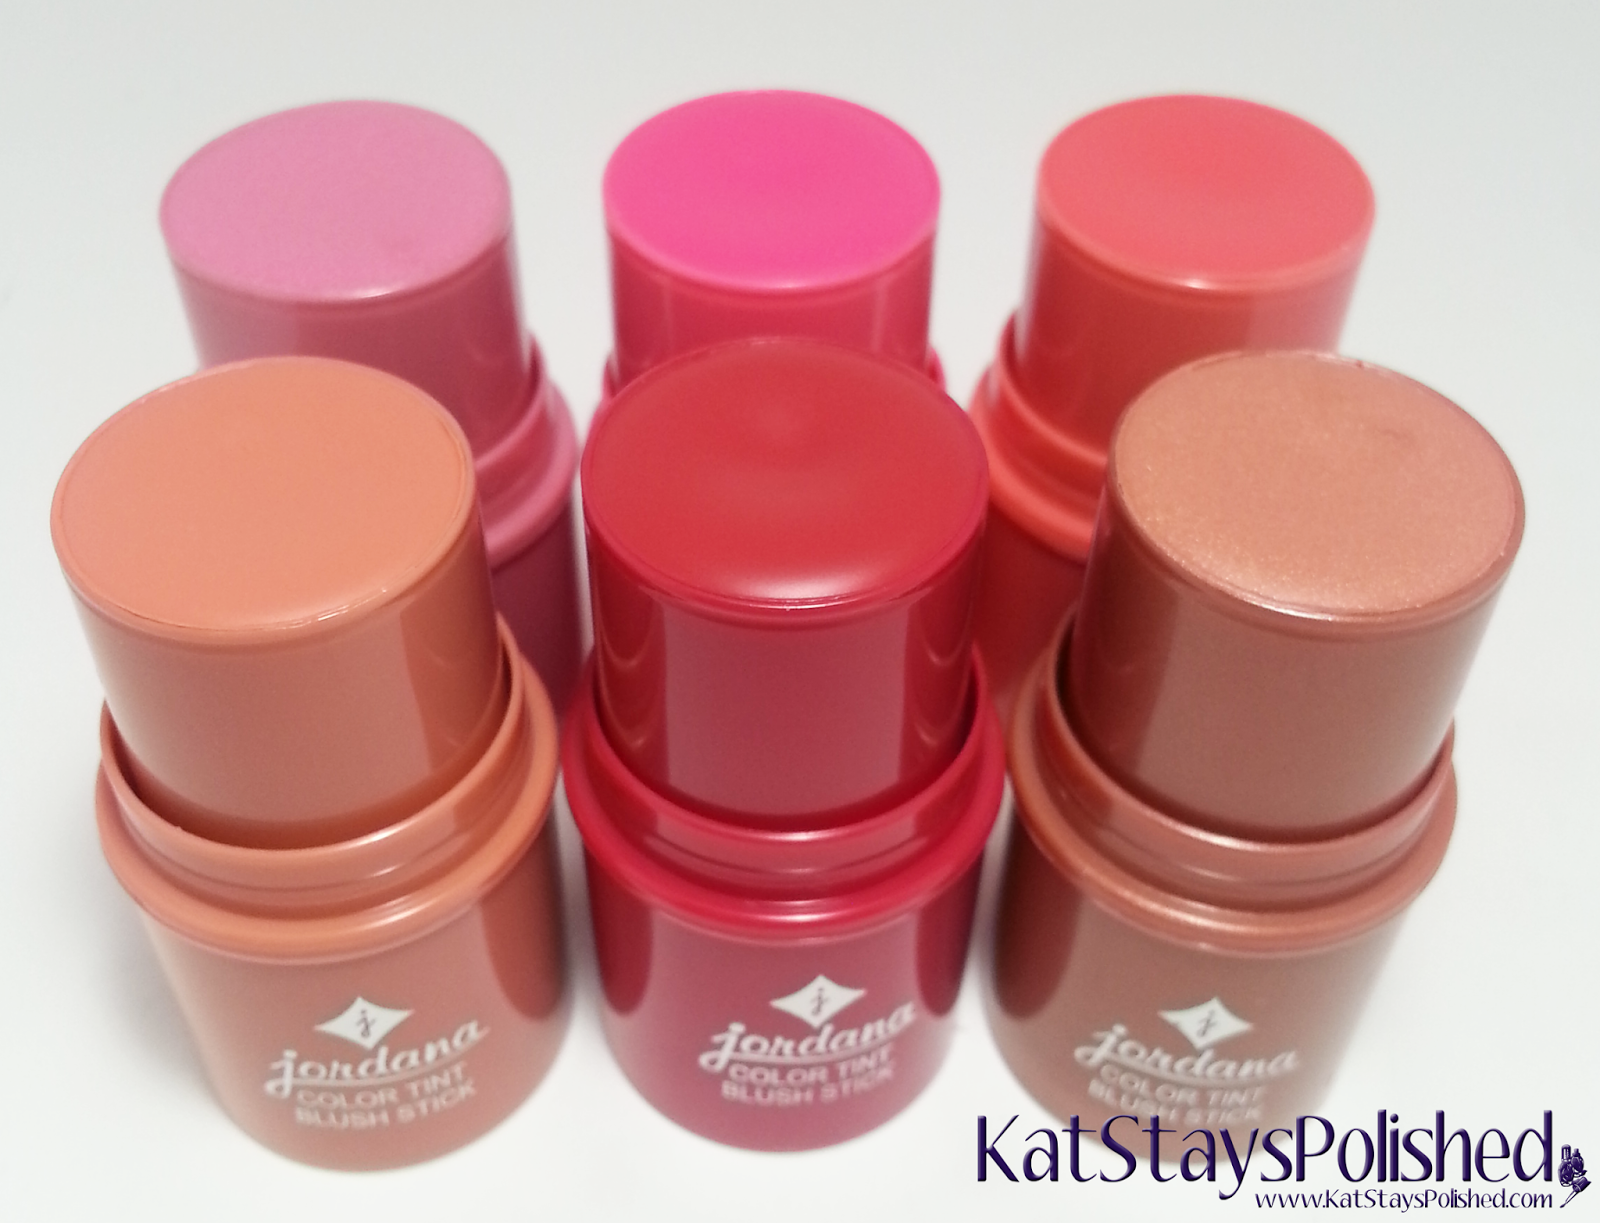 Jordana Color Tint Blush Stick | Kat Stays Polished